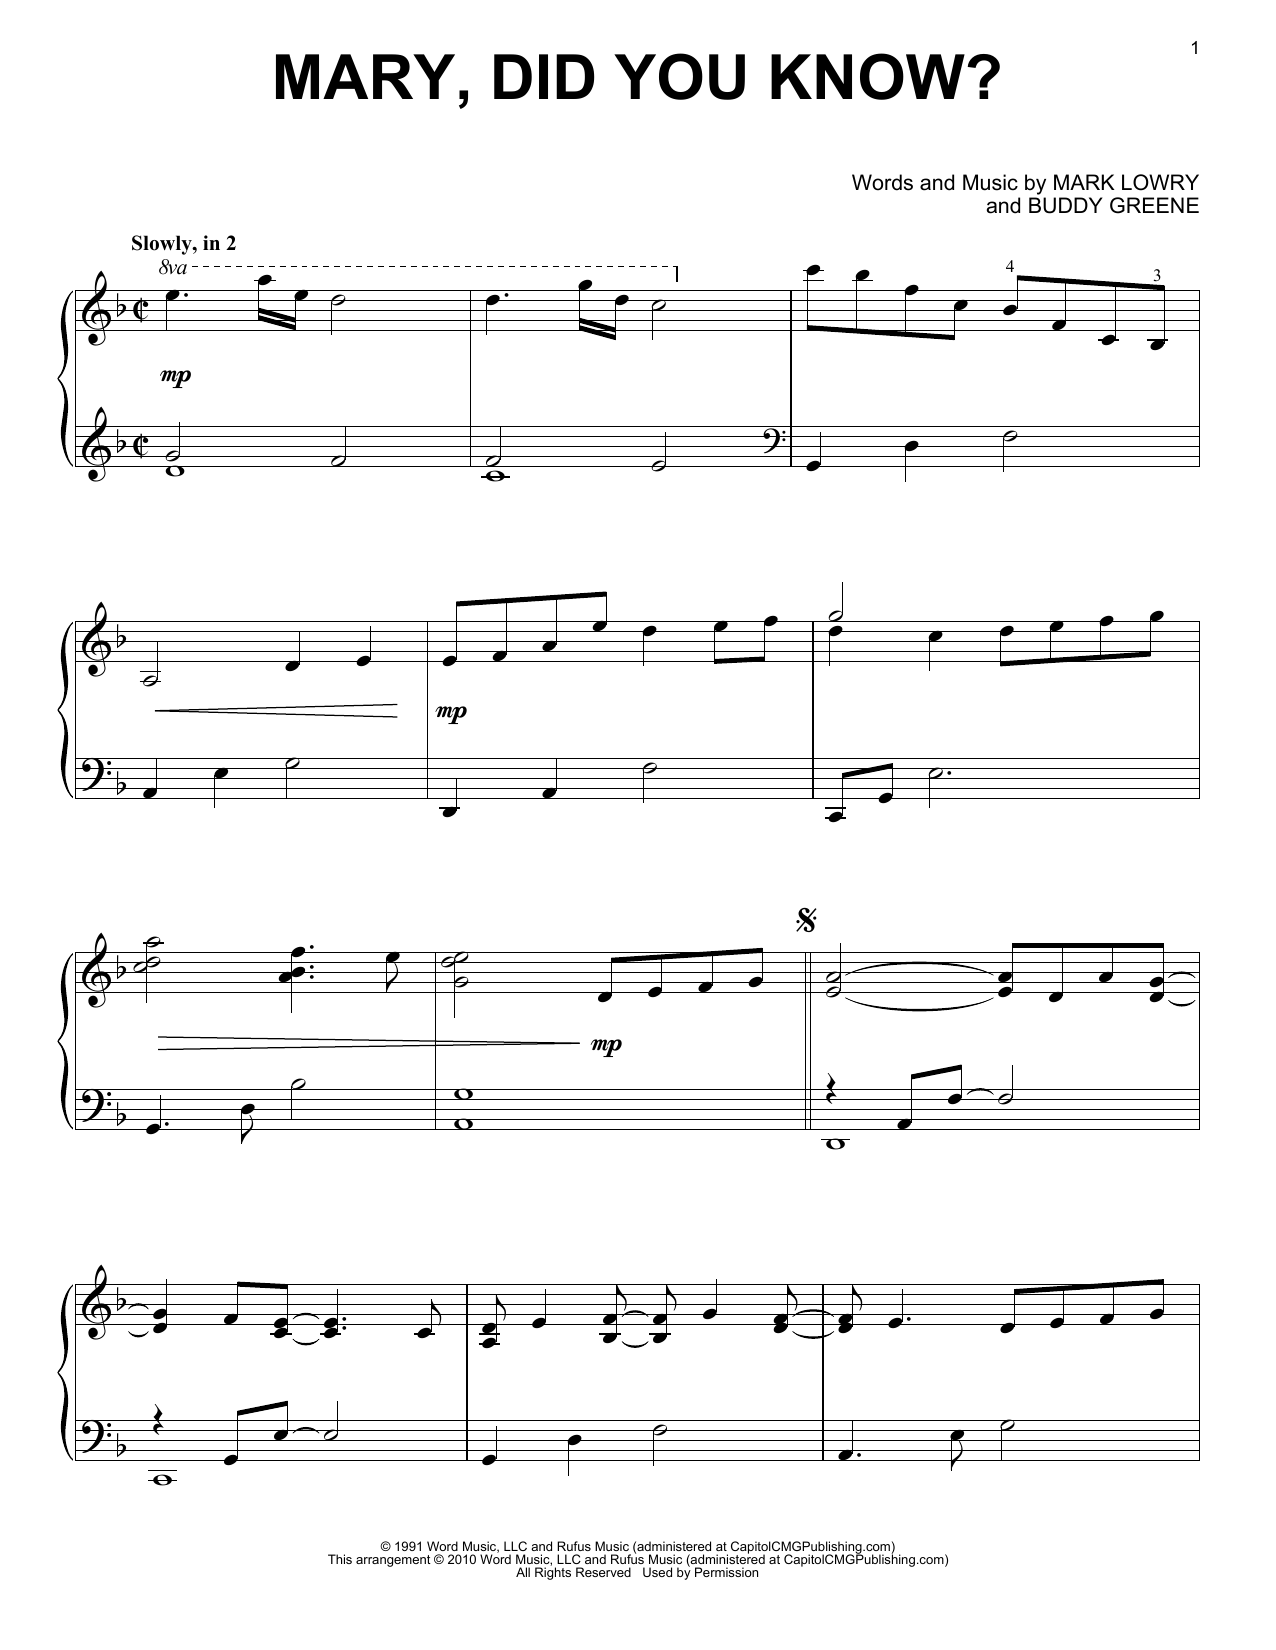 Mark Lowry Mary, Did You Know? sheet music notes and chords. Download Printable PDF.